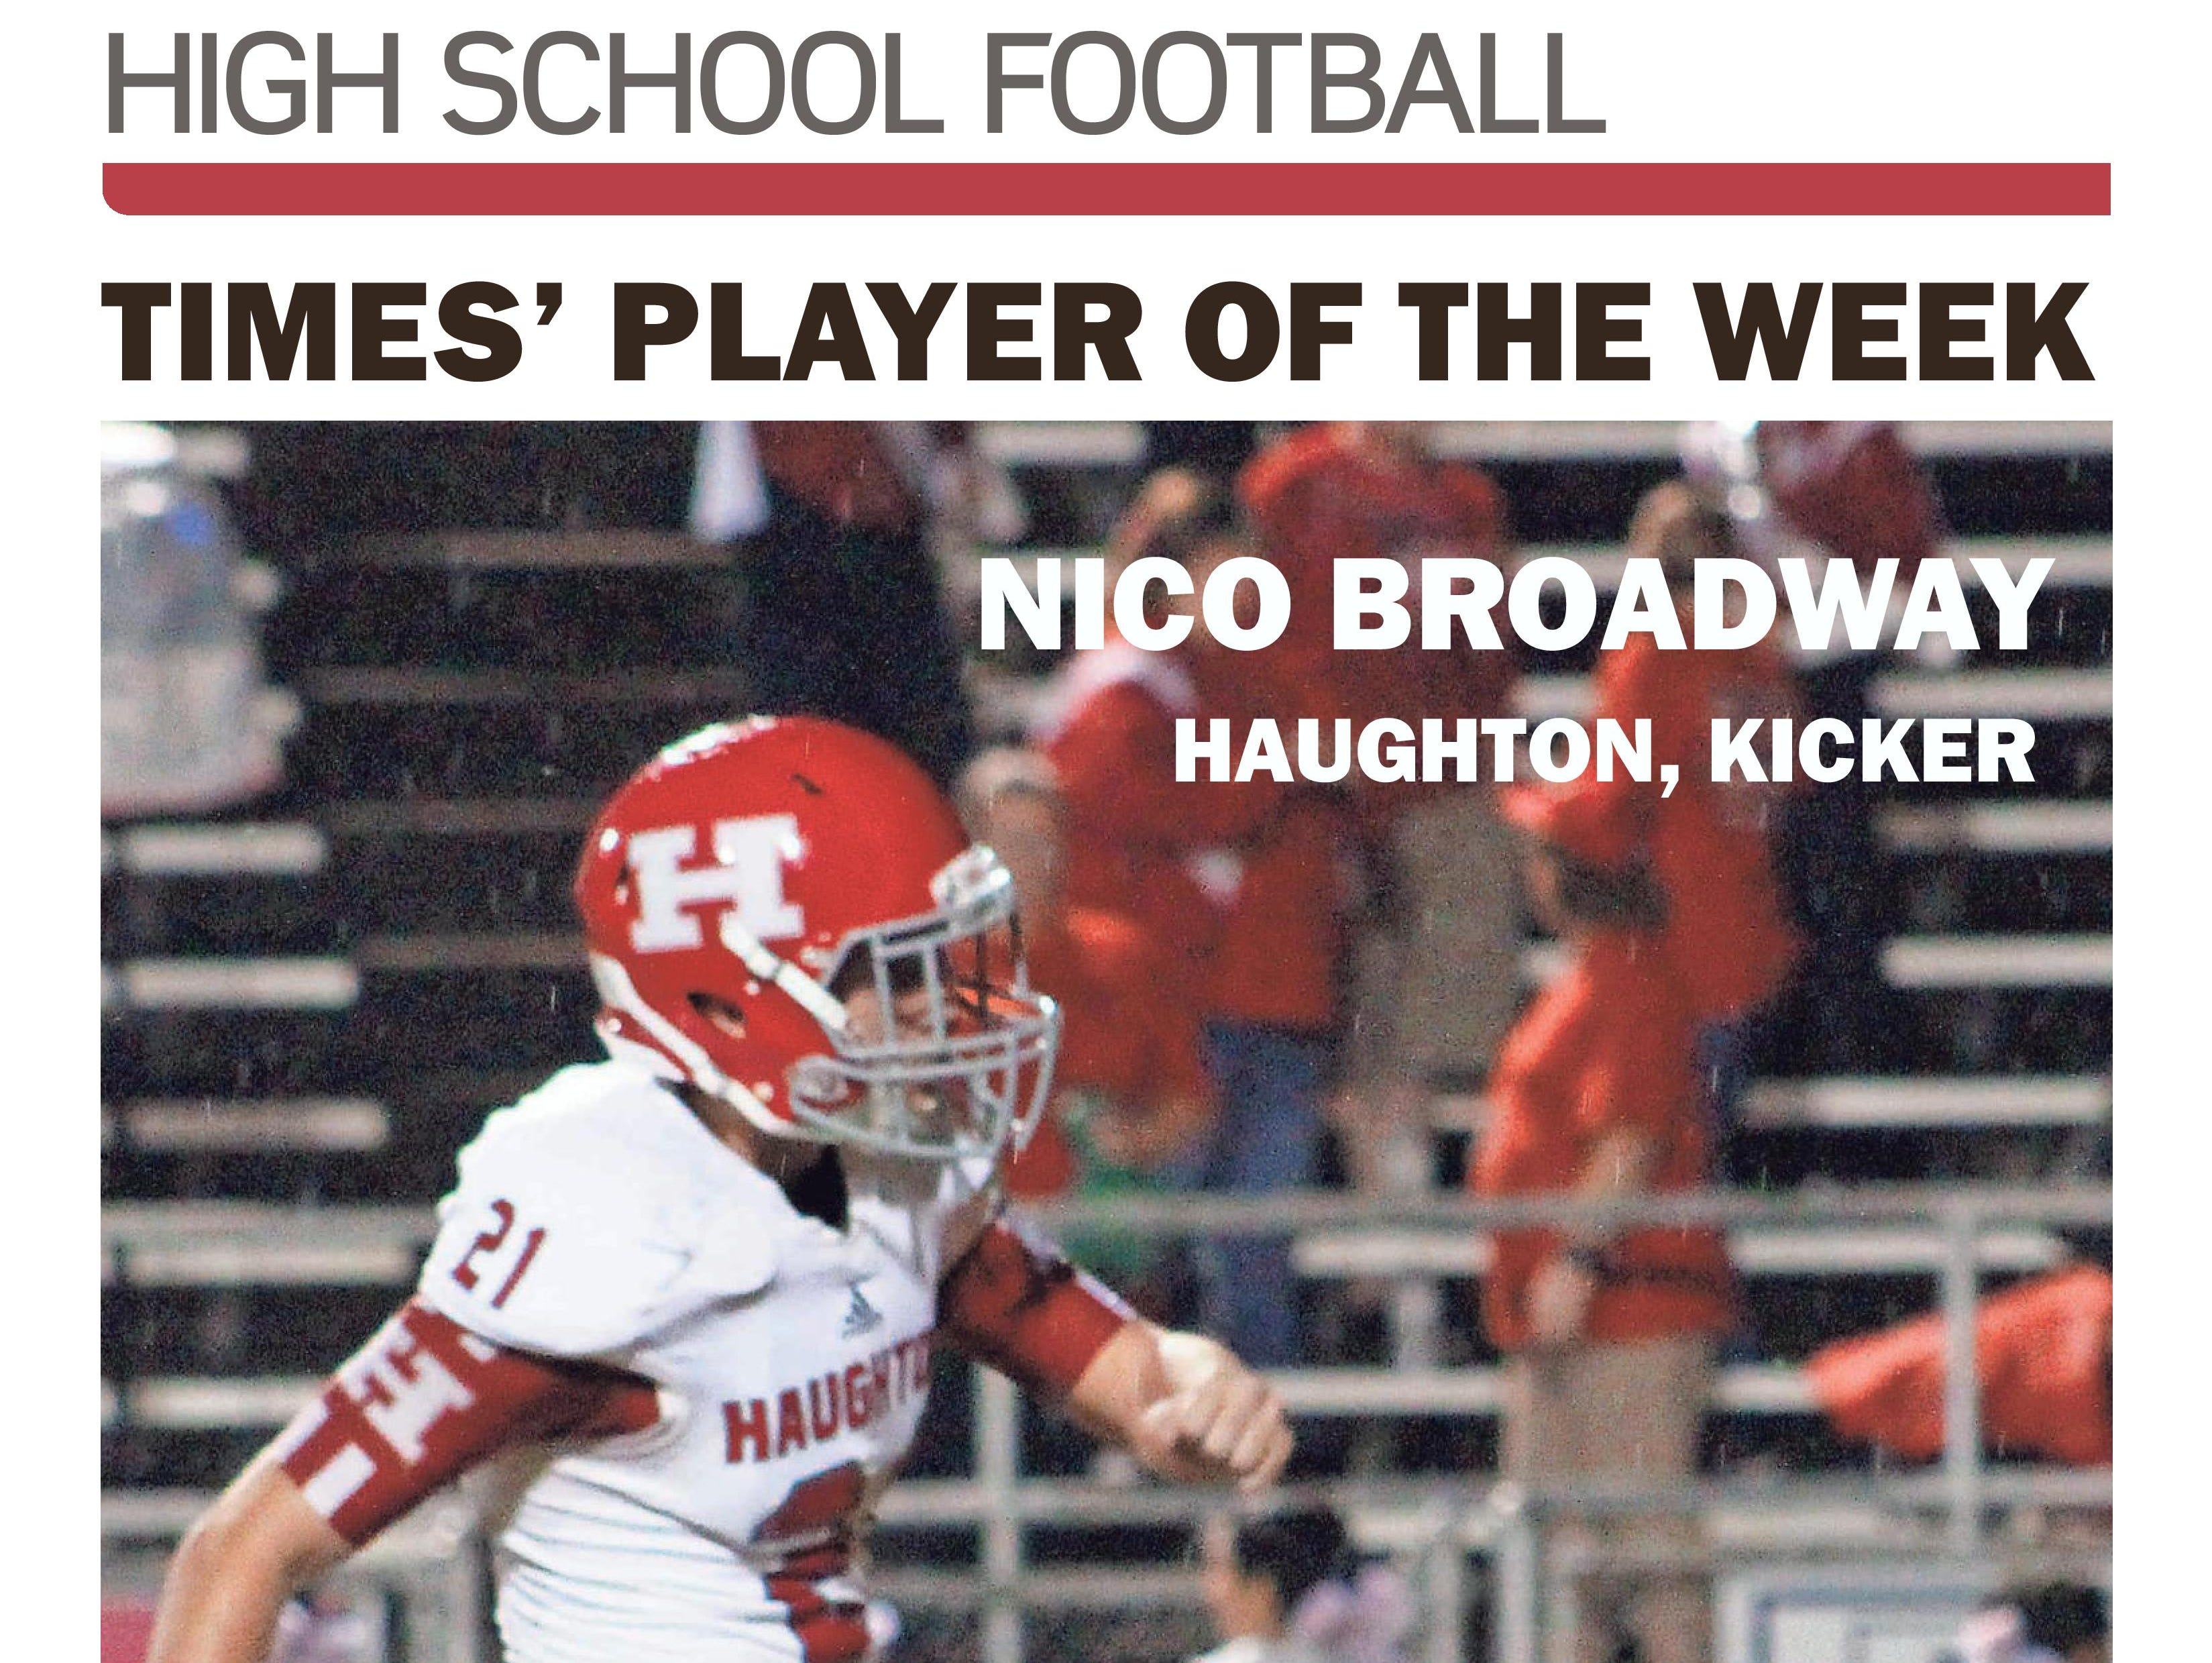 Haughton kicker Nico Broadway was named the (Week 10) Player of the Week.